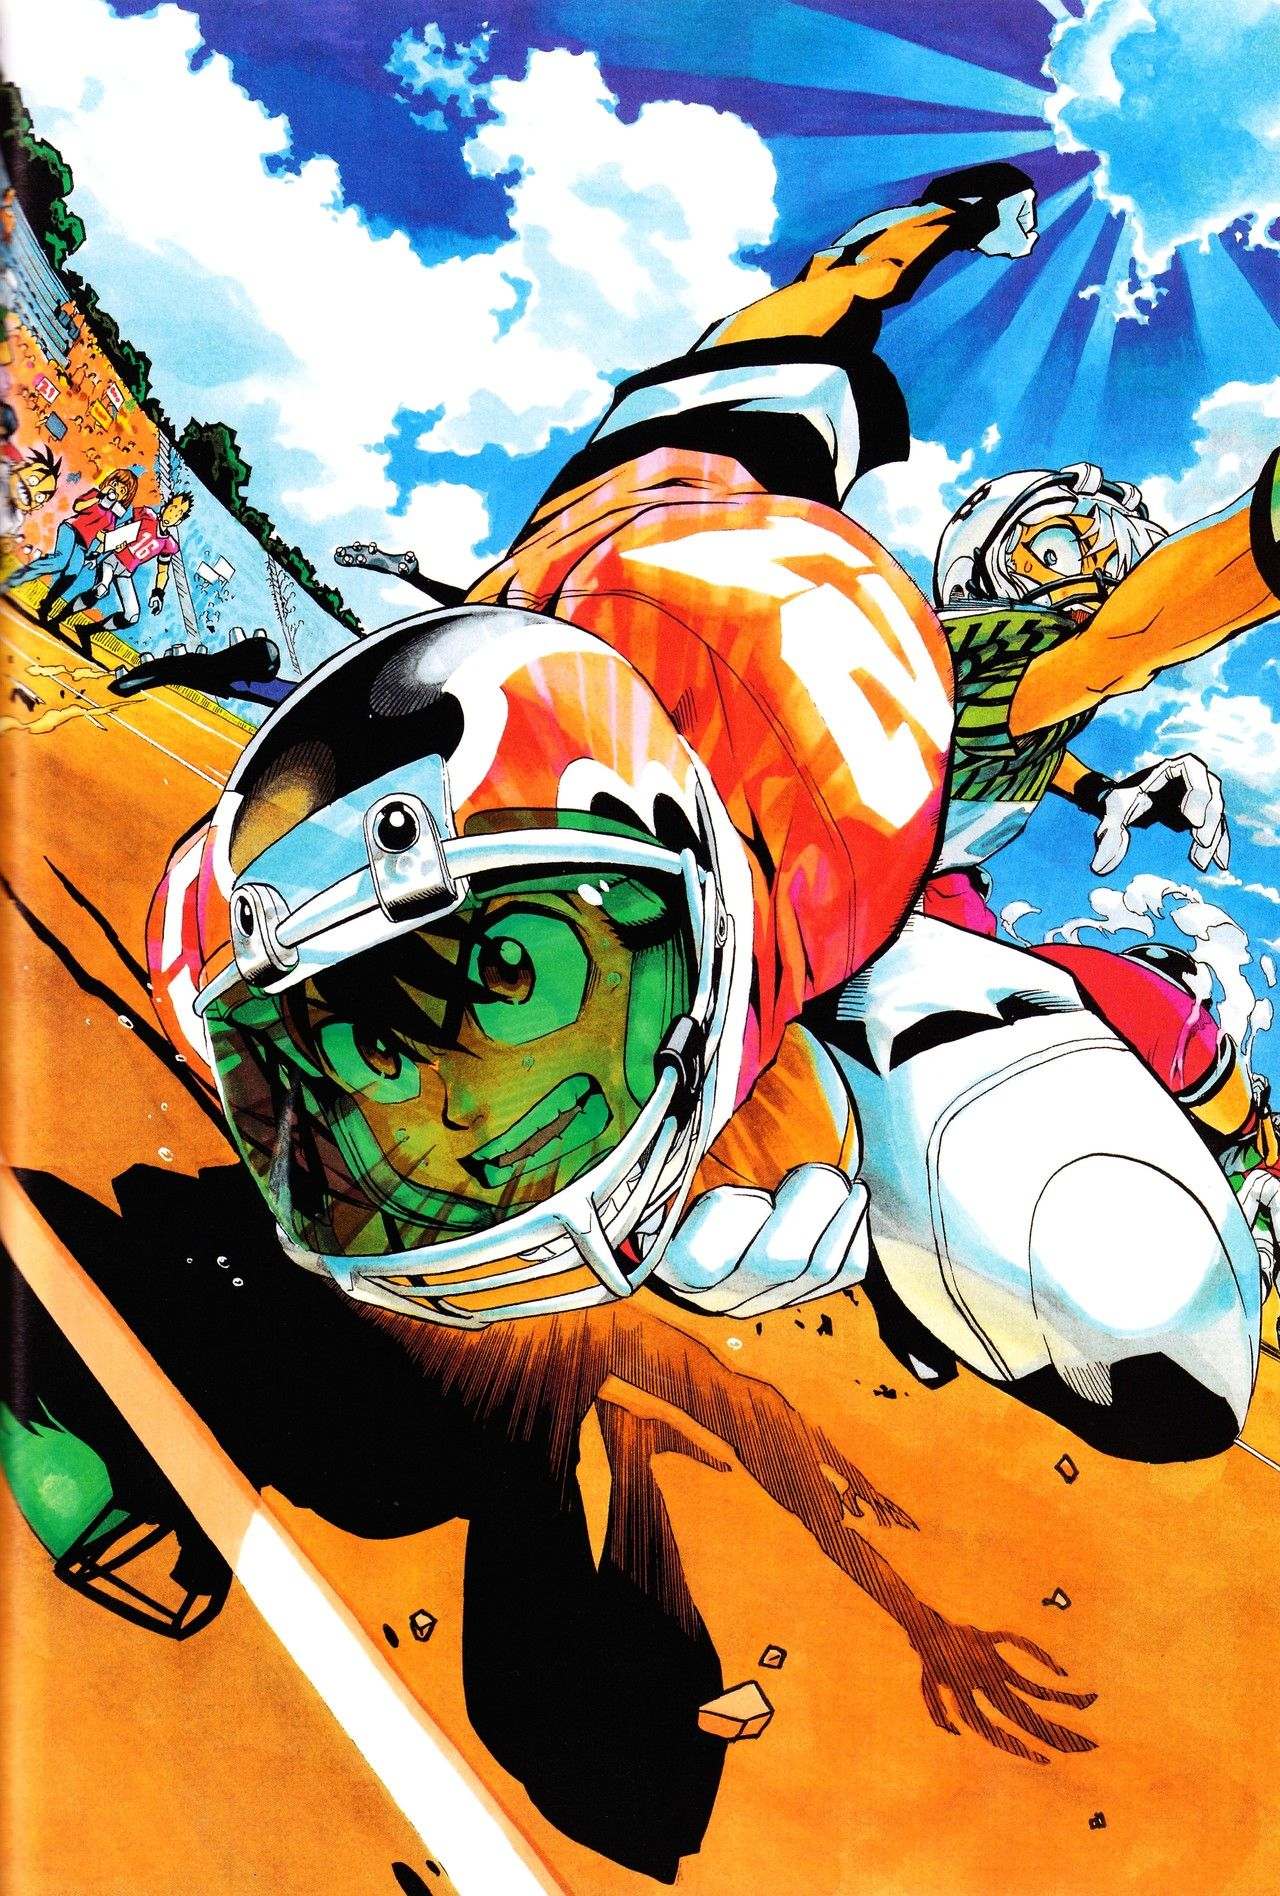 """Eyeshield 21"" Anime, Yūsuke murata, Anime art"